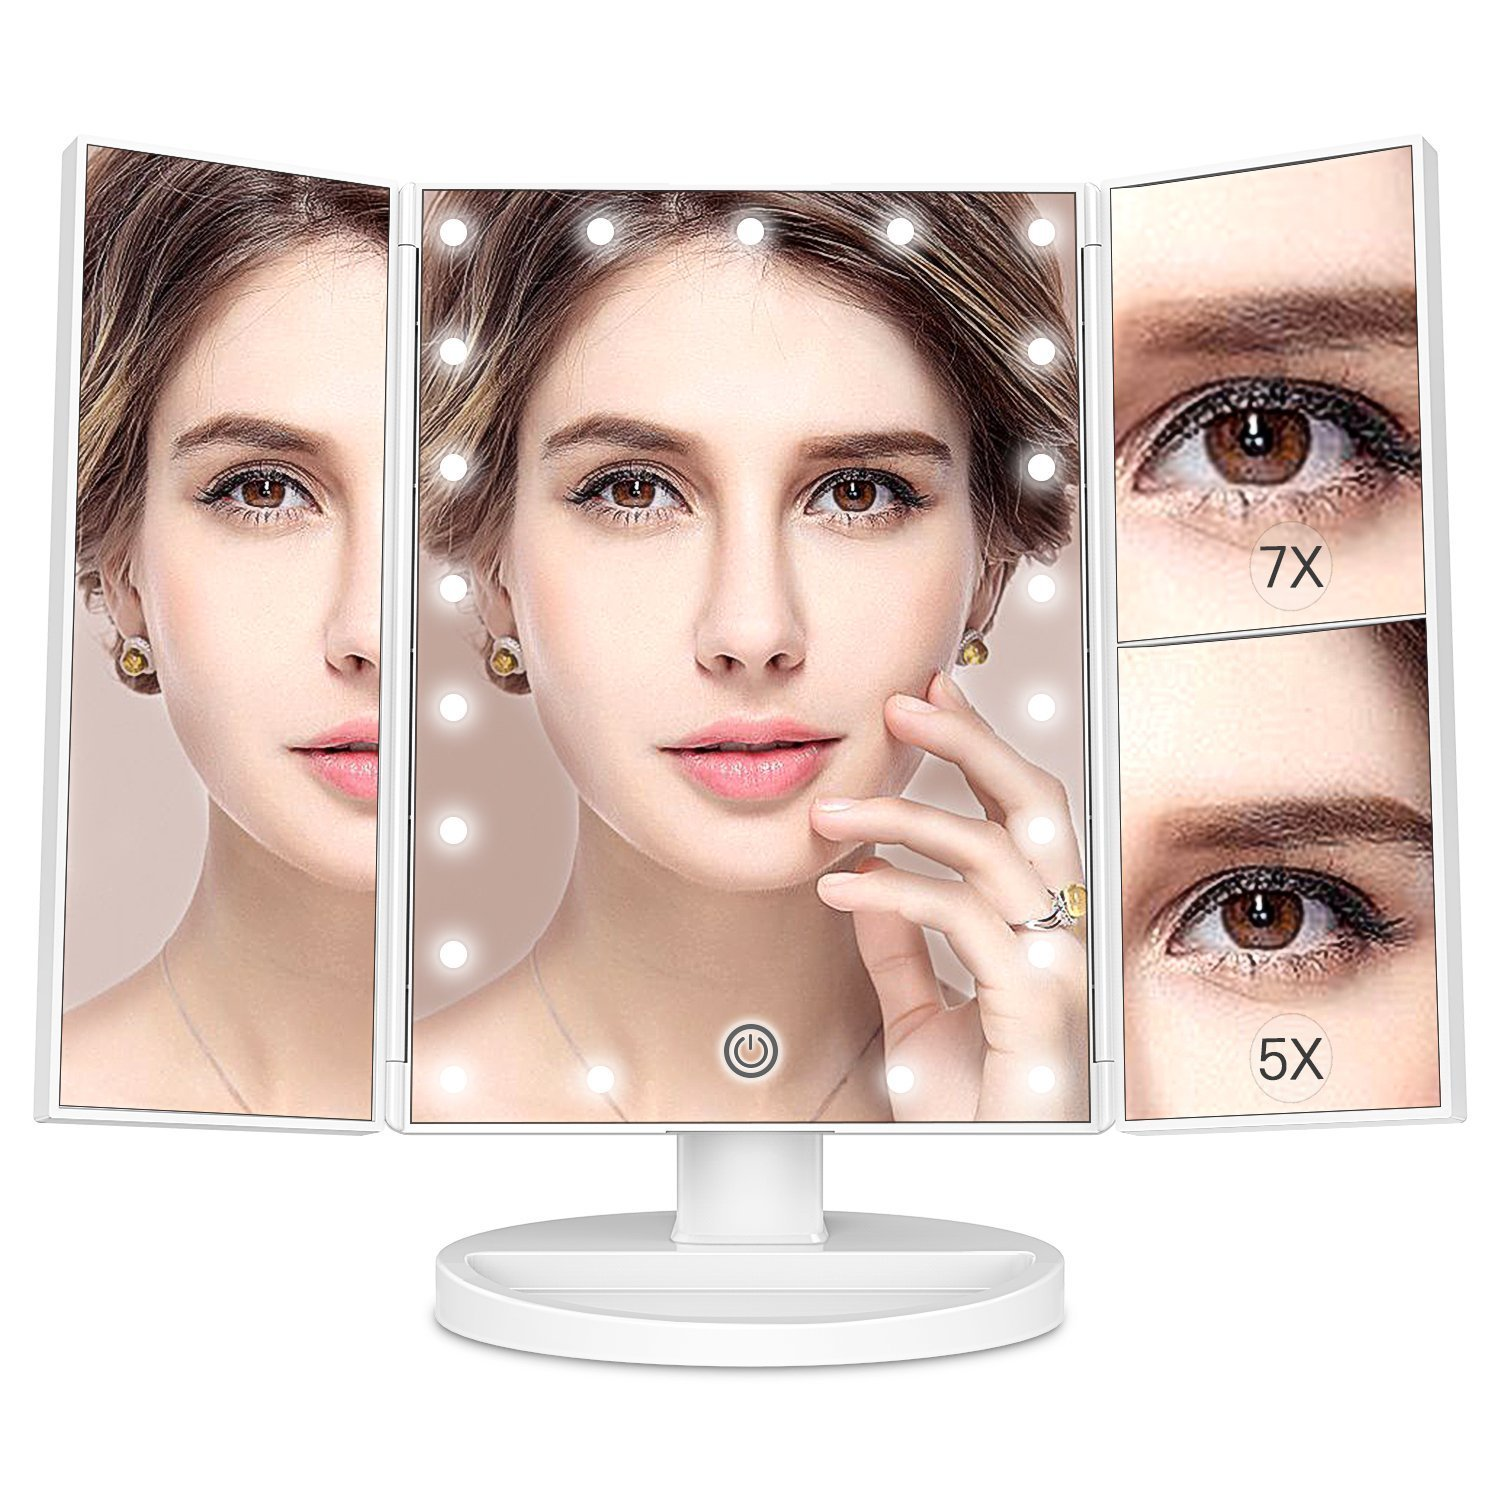 KingKKong Makeup Vanity with 21 LED Lights - 3X/2X Magnifying Makeup Vanity Mirror with Touch Screen, Dual Power Supply, 180° Adjustable Rotation,Countertop Cosmetic Mirror (White)